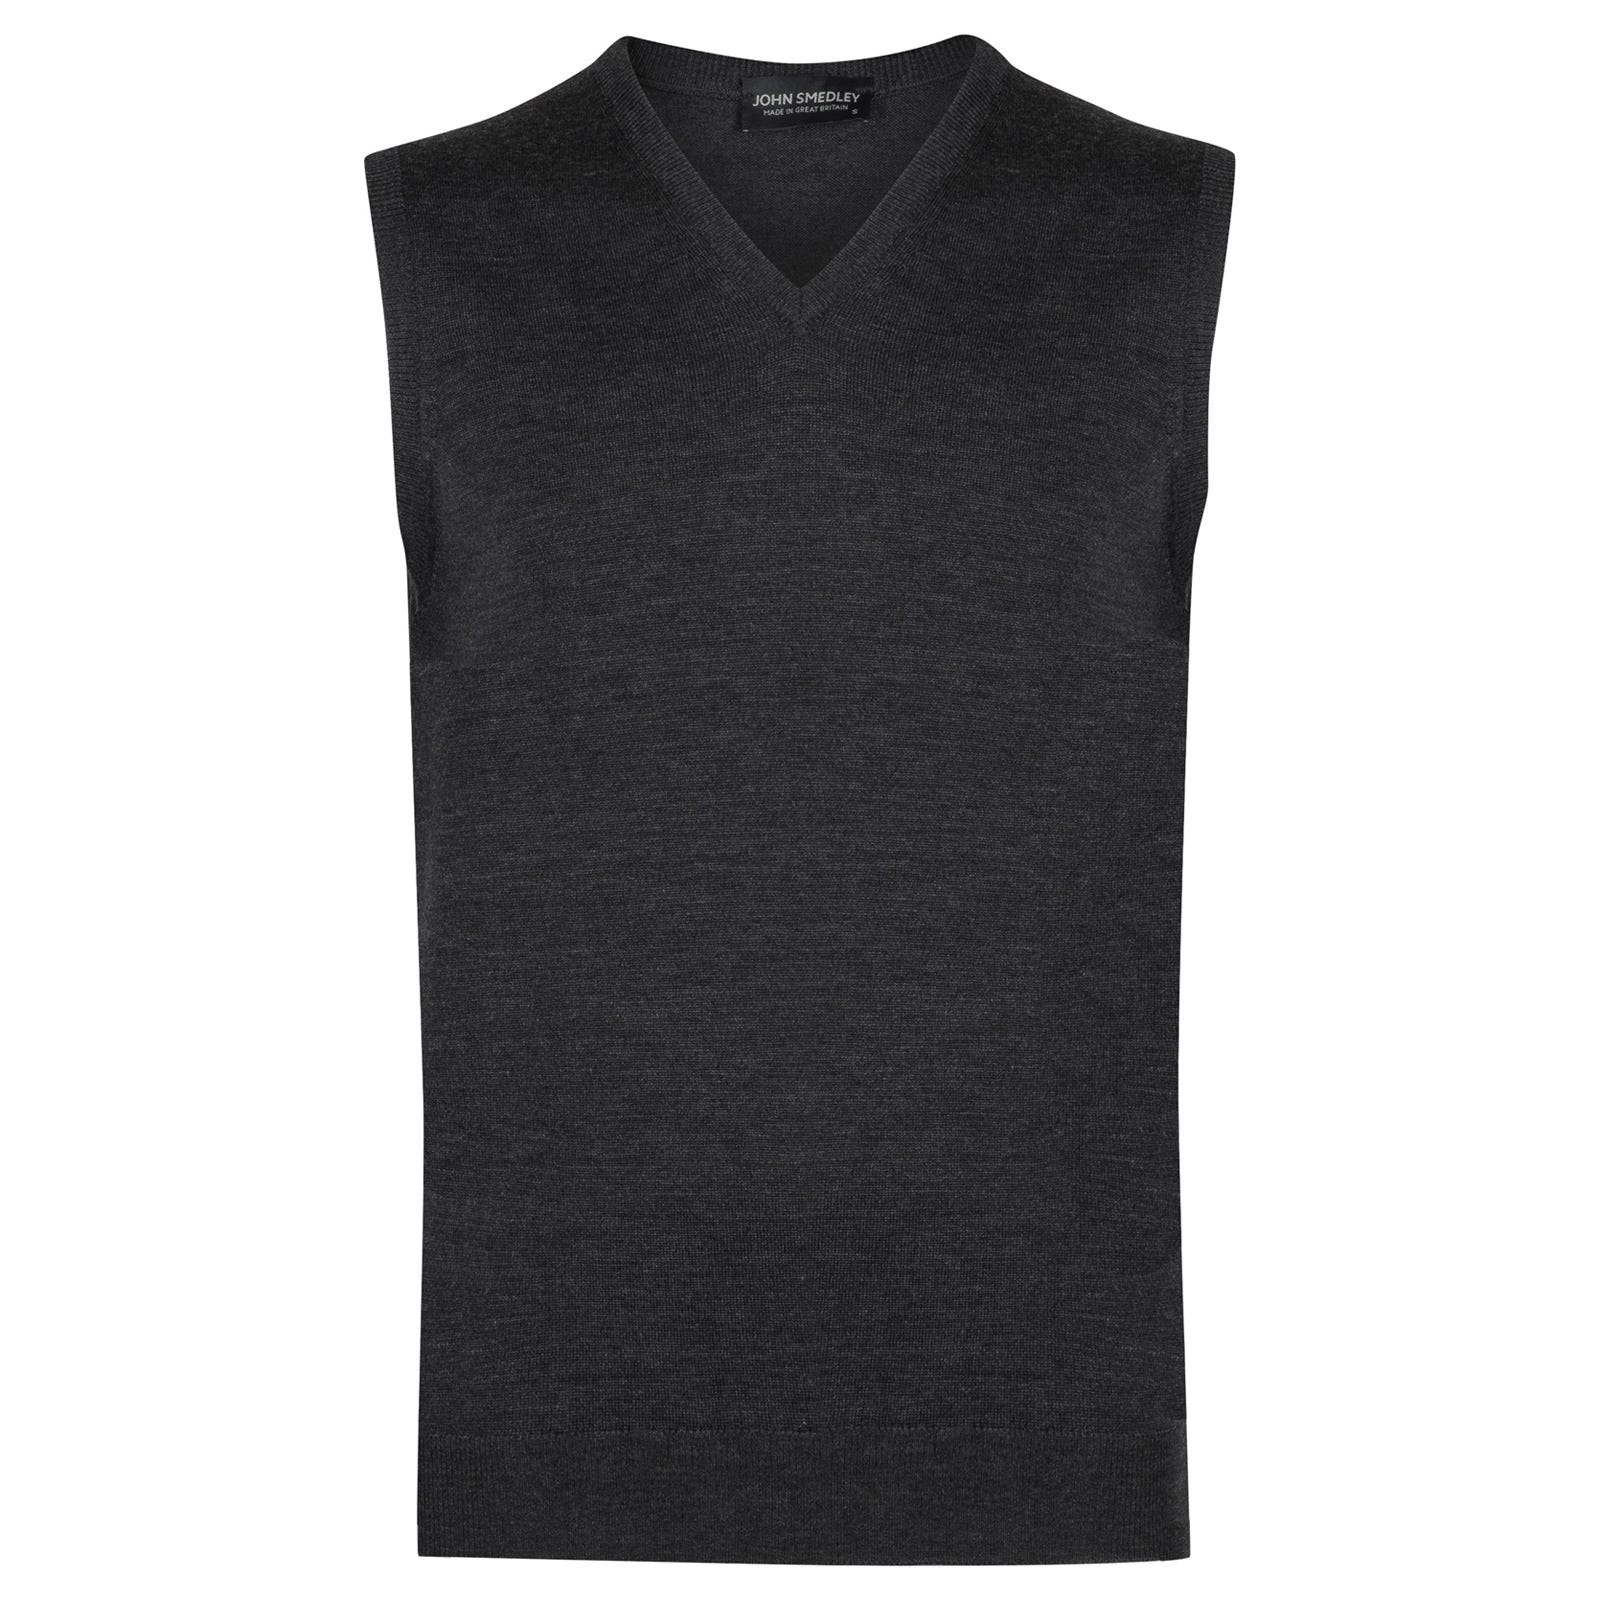 John Smedley hadfield Merino Wool Slipover in Charcoal-XXL